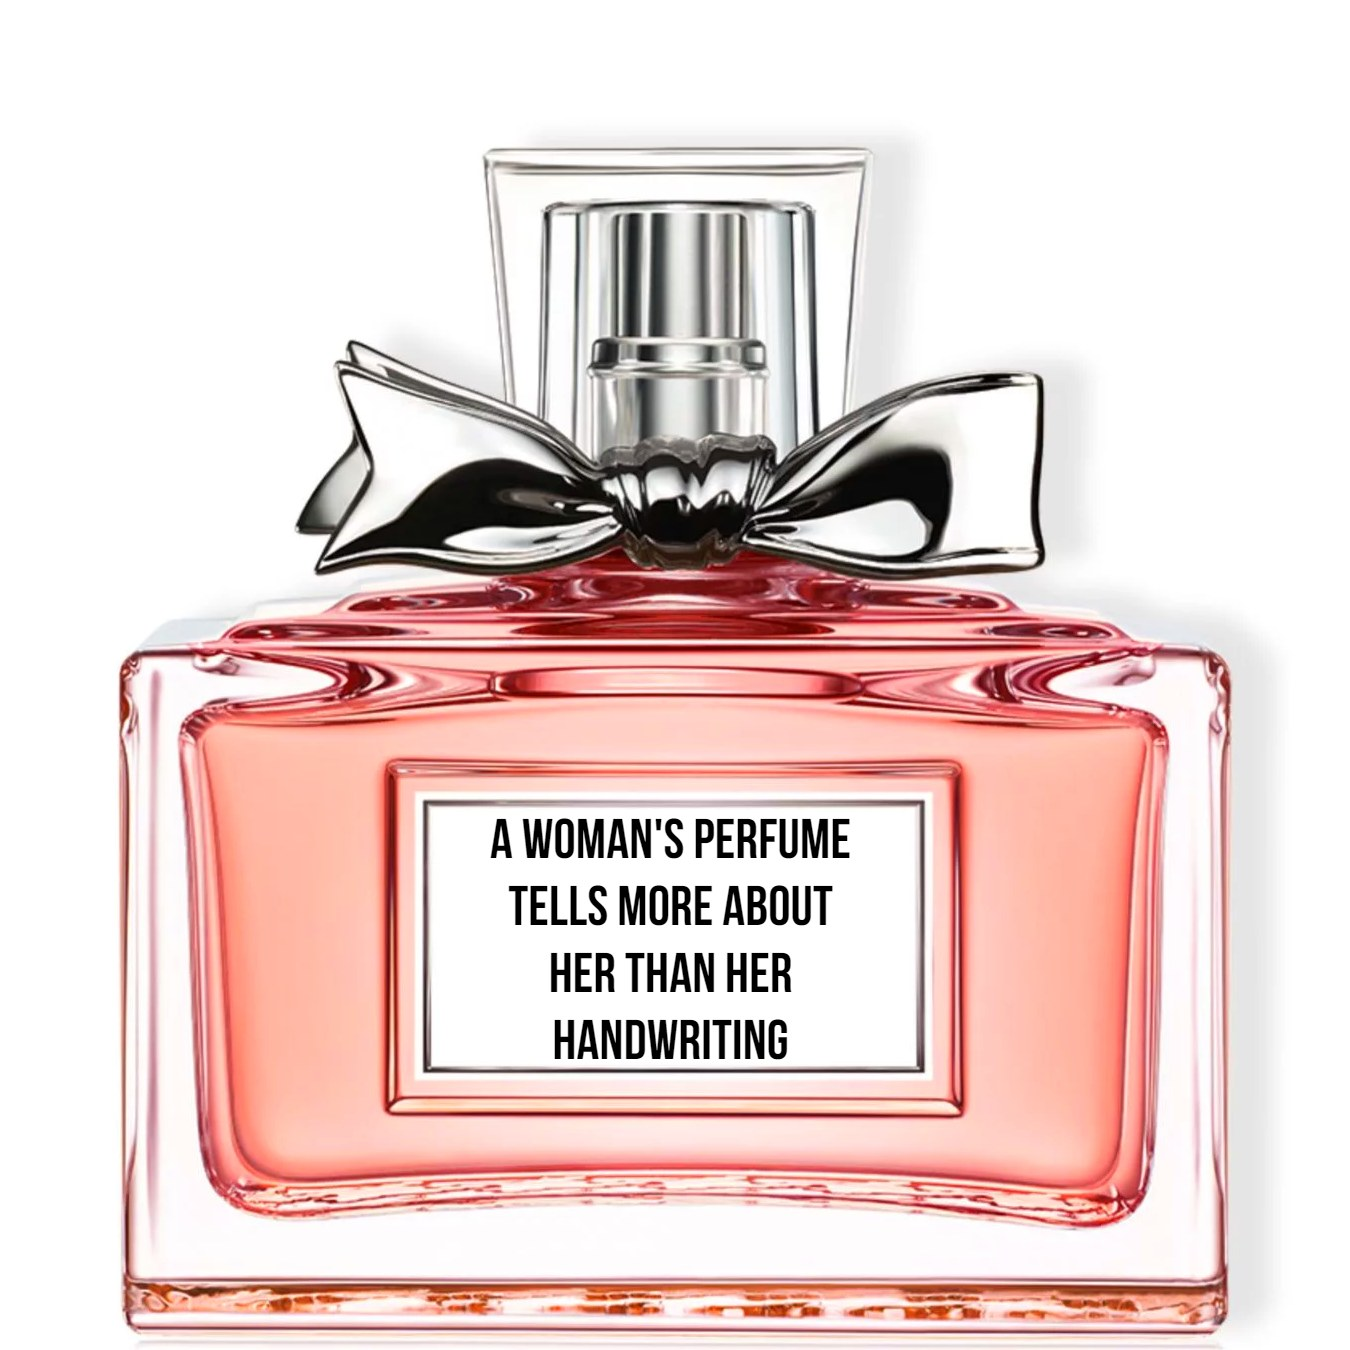 A woman's perfume tells more about her than her handwriting. Christian _#Dior #quote be kitschig blog